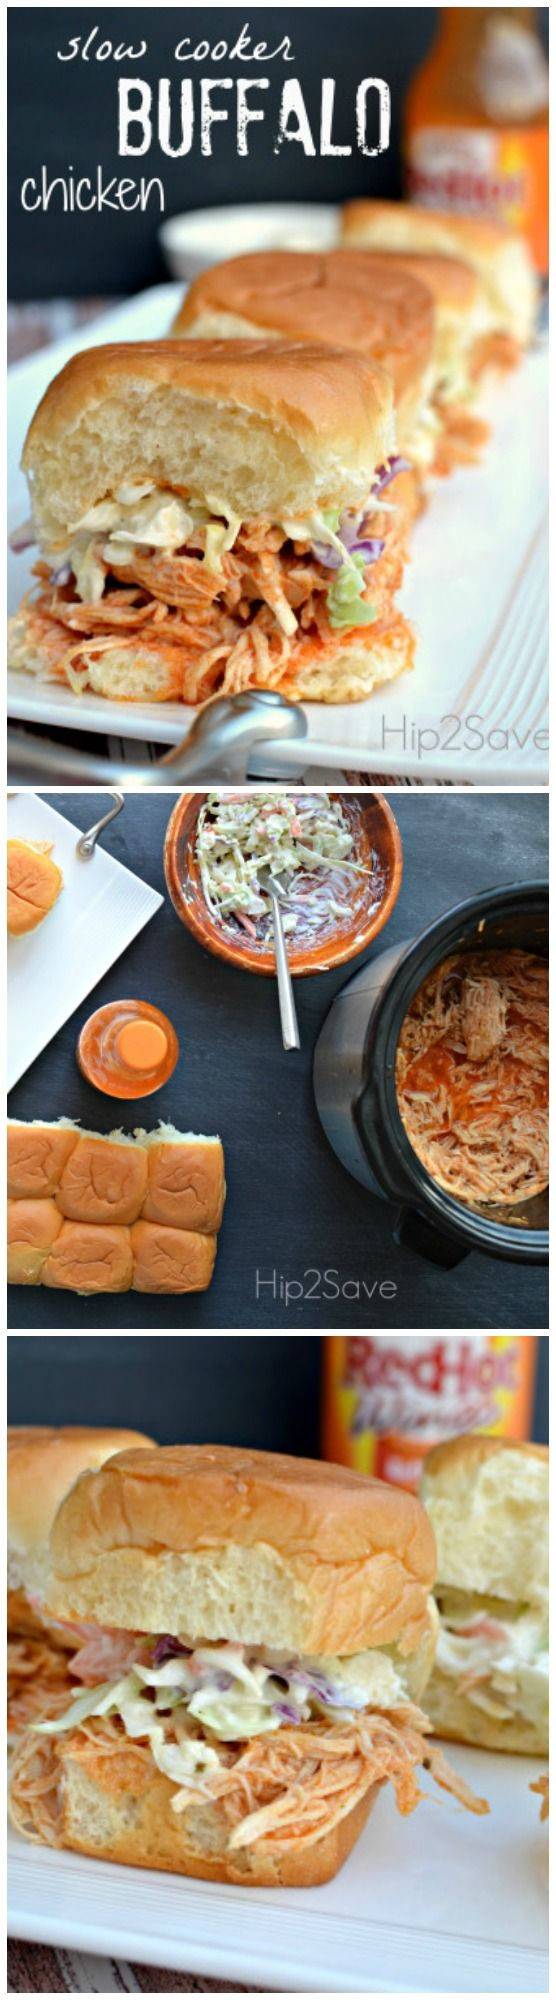 Slow cooker buffalo chicken. These scrumptious little bites are great for an afternoon snack or during the weekends.